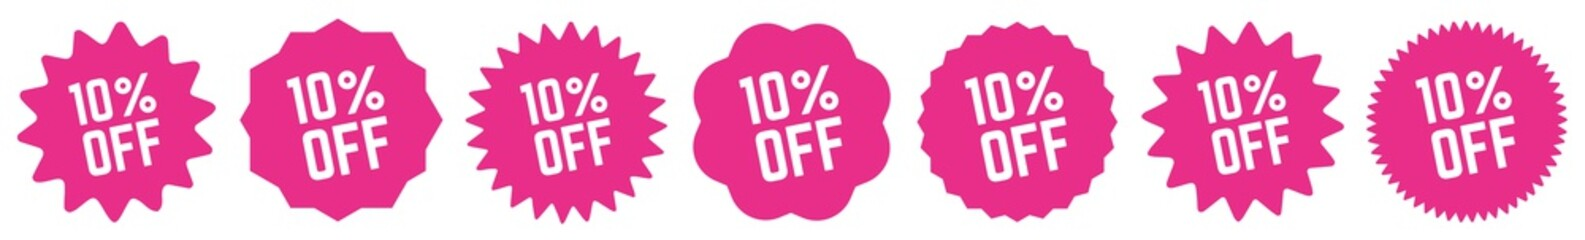 10 Percent OFF Discount Tag Pink | Special Offer Icon | Sale Sticker | Deal Label | Variations